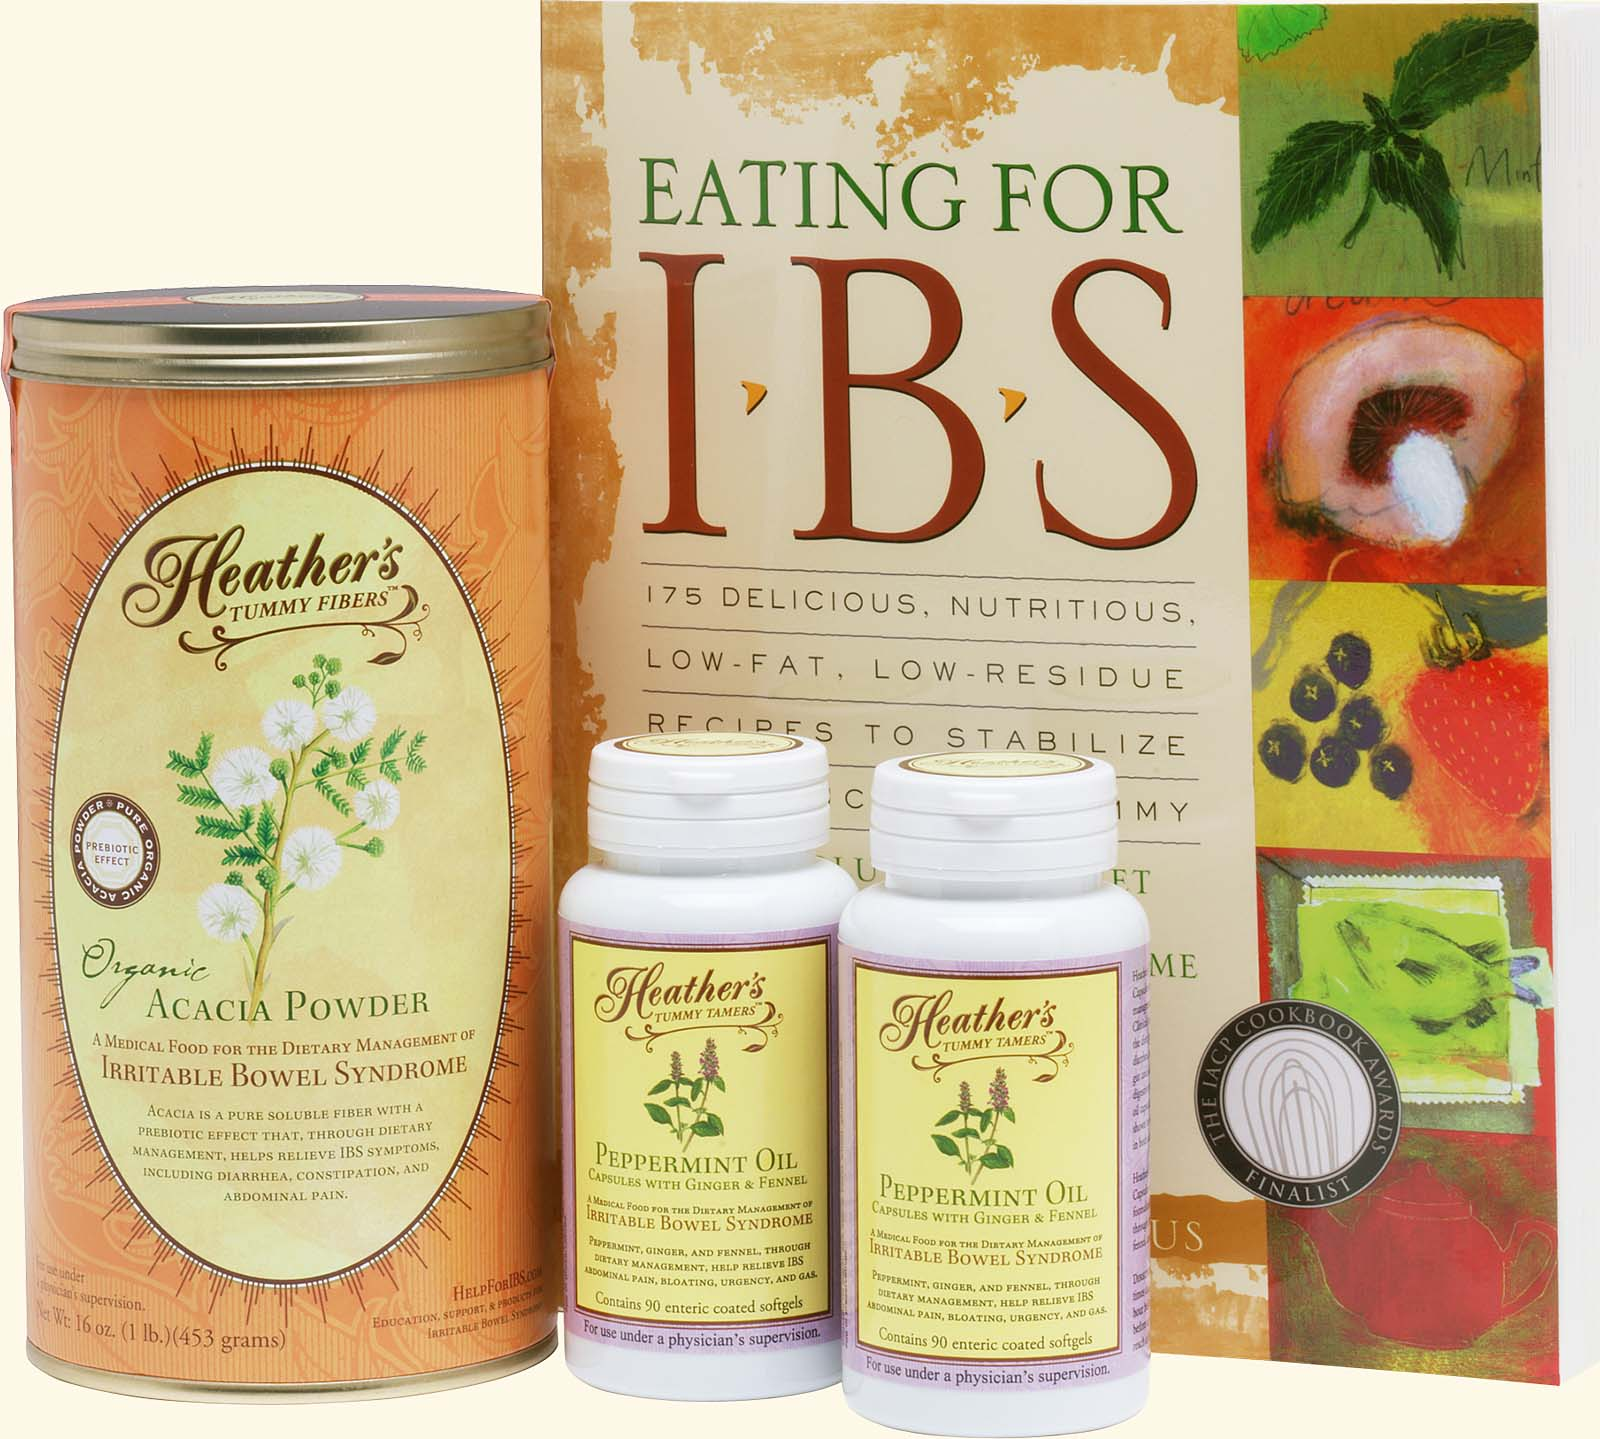 IBS Diet Kit #2<br>Eating for IBS,<BR>Tummy Fiber<BR>Acacia Can,<BR>Peppermint Caps